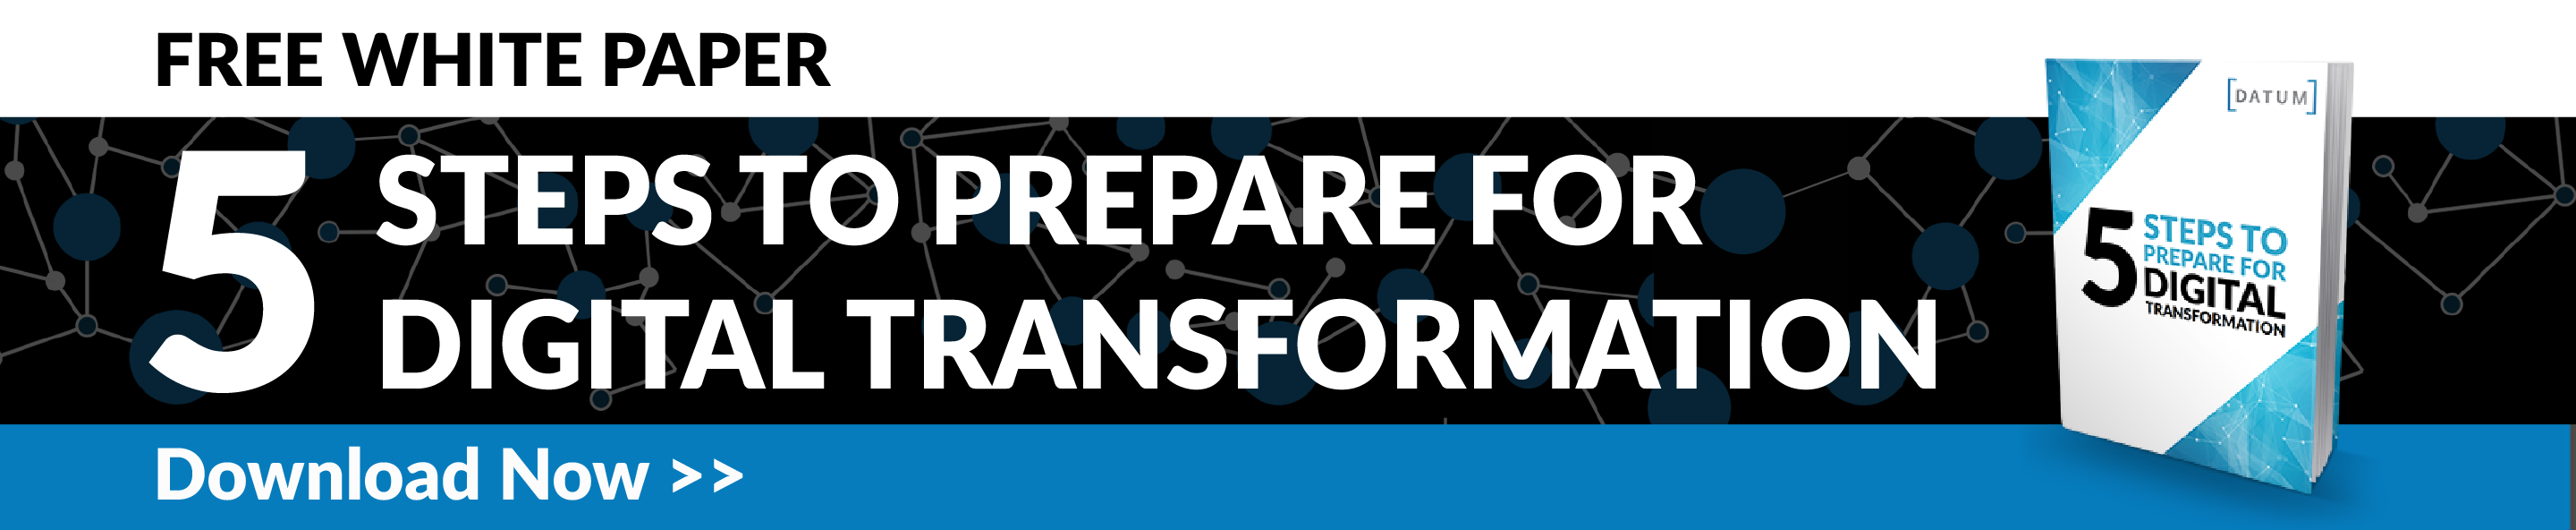 Download Digital Transformation White Paper